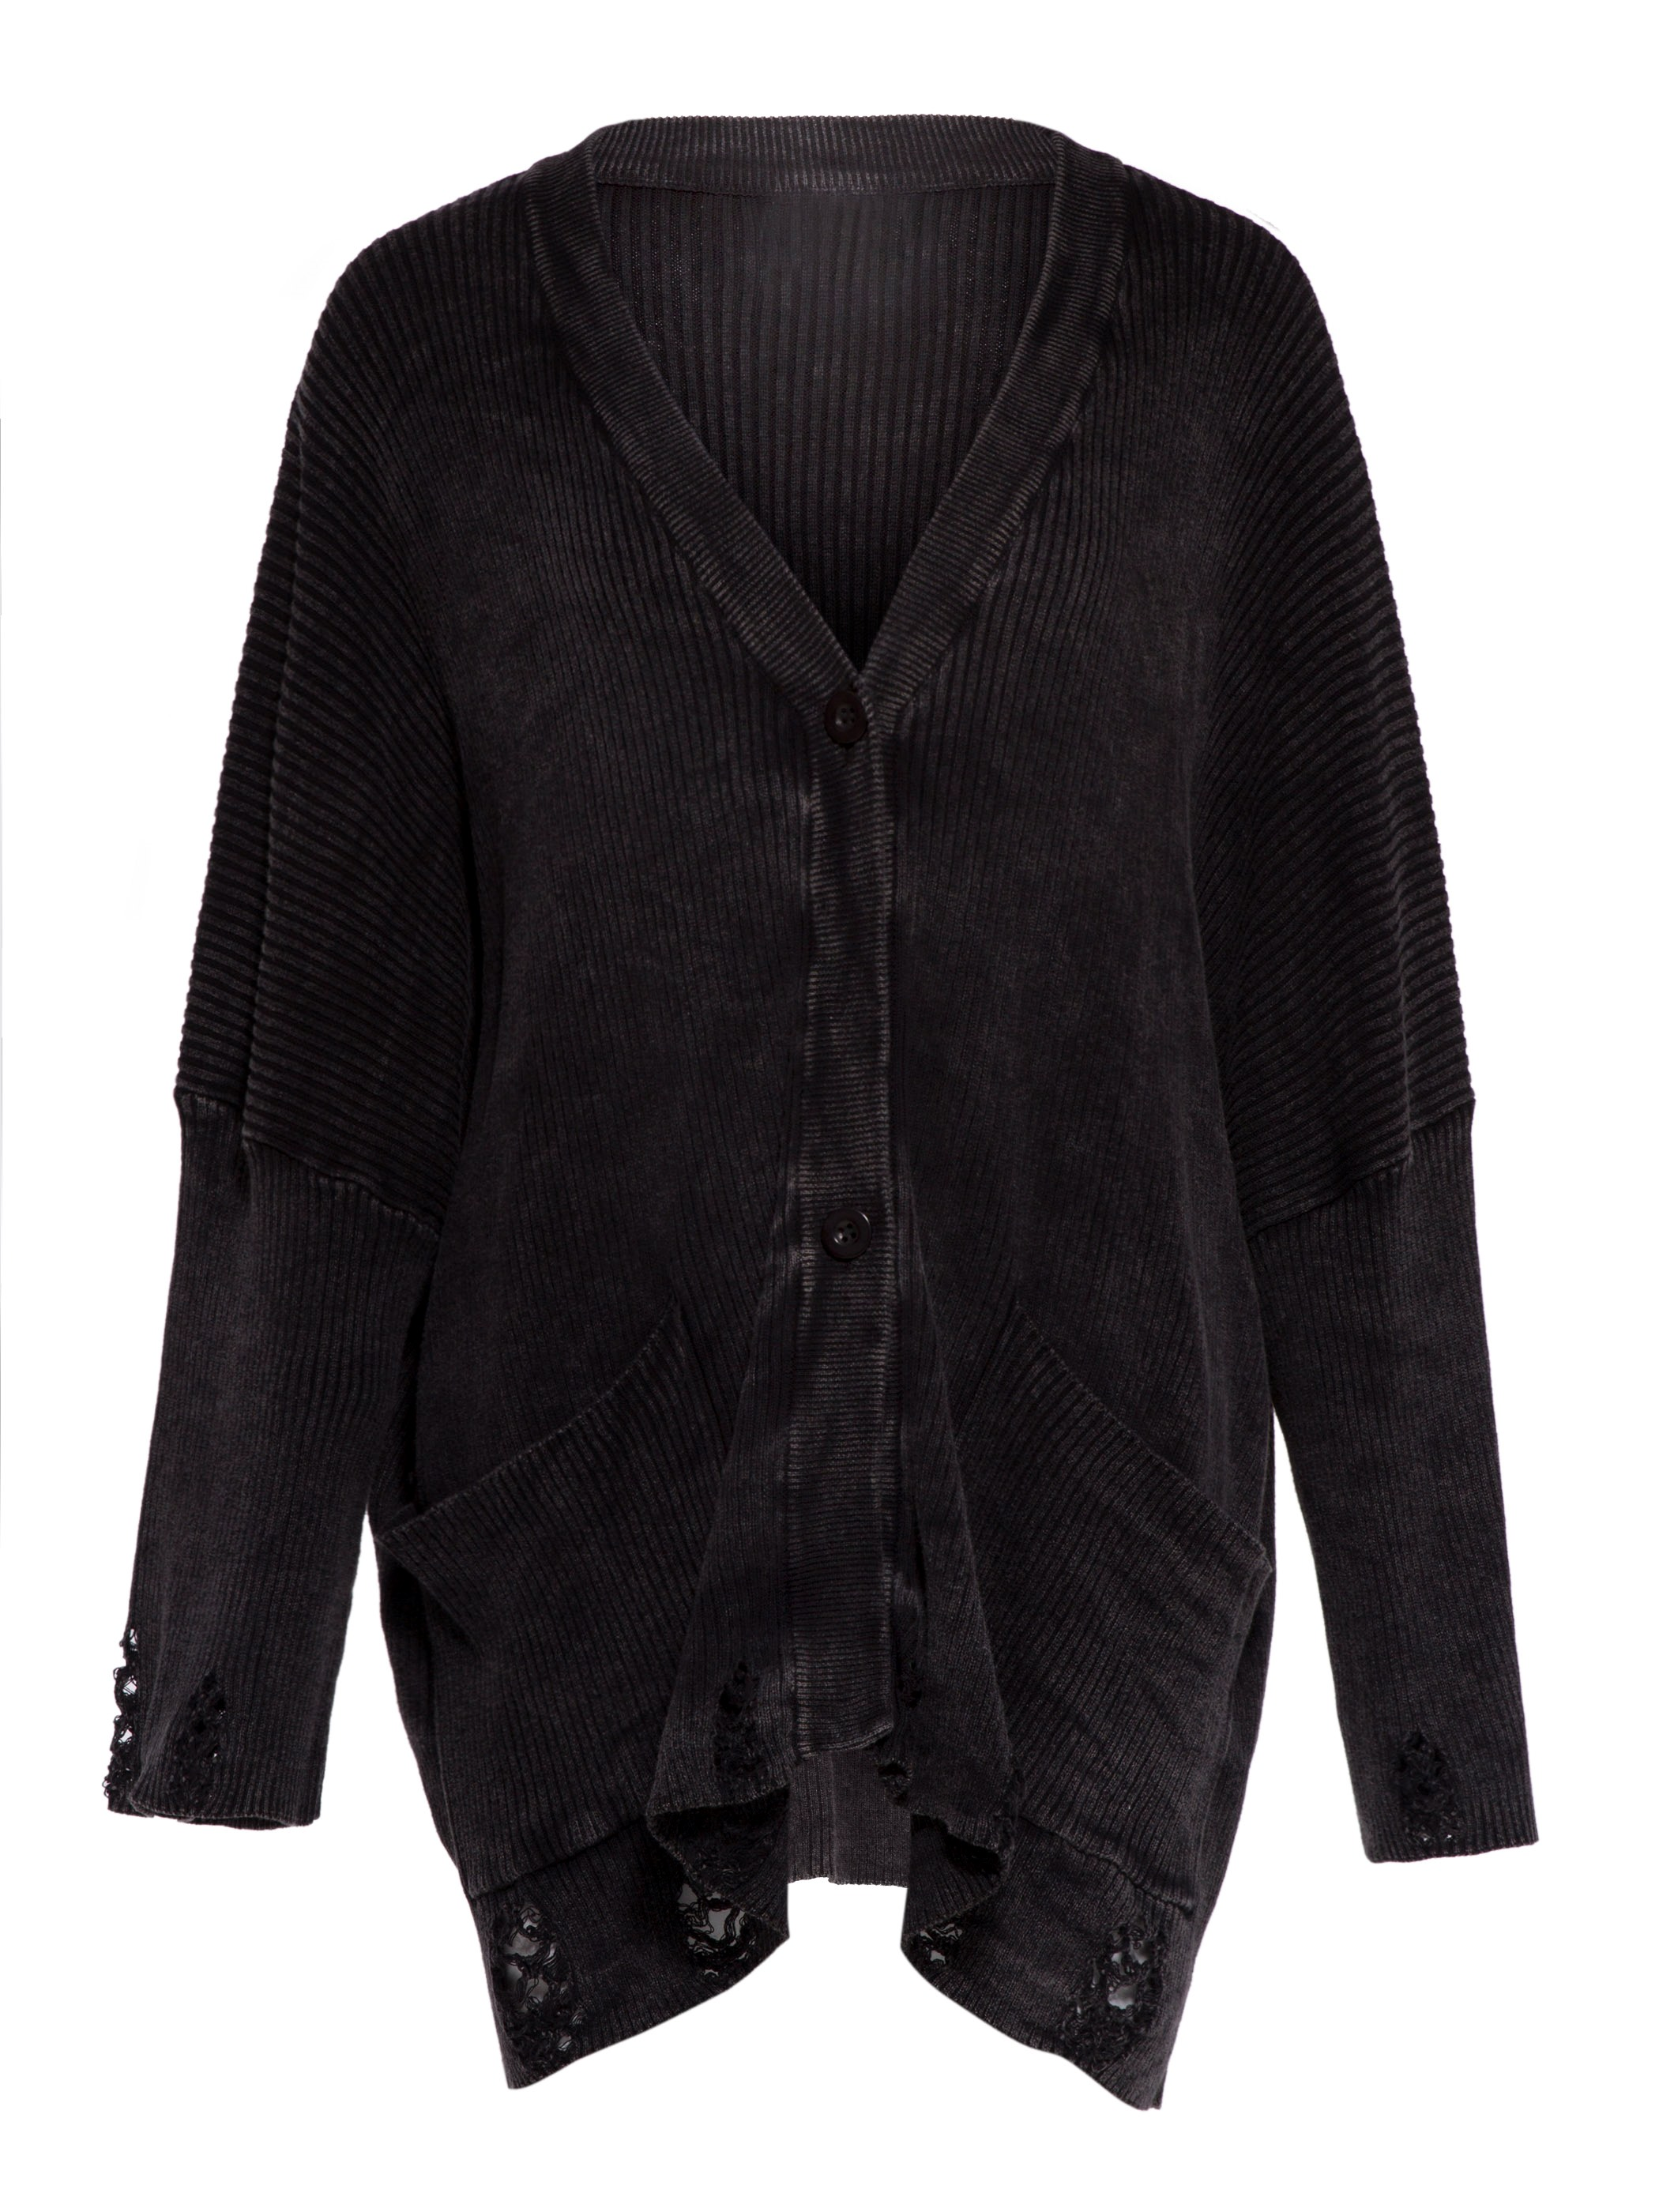 Ercdress Loose Hole Single-Breasted Cardigan Coat